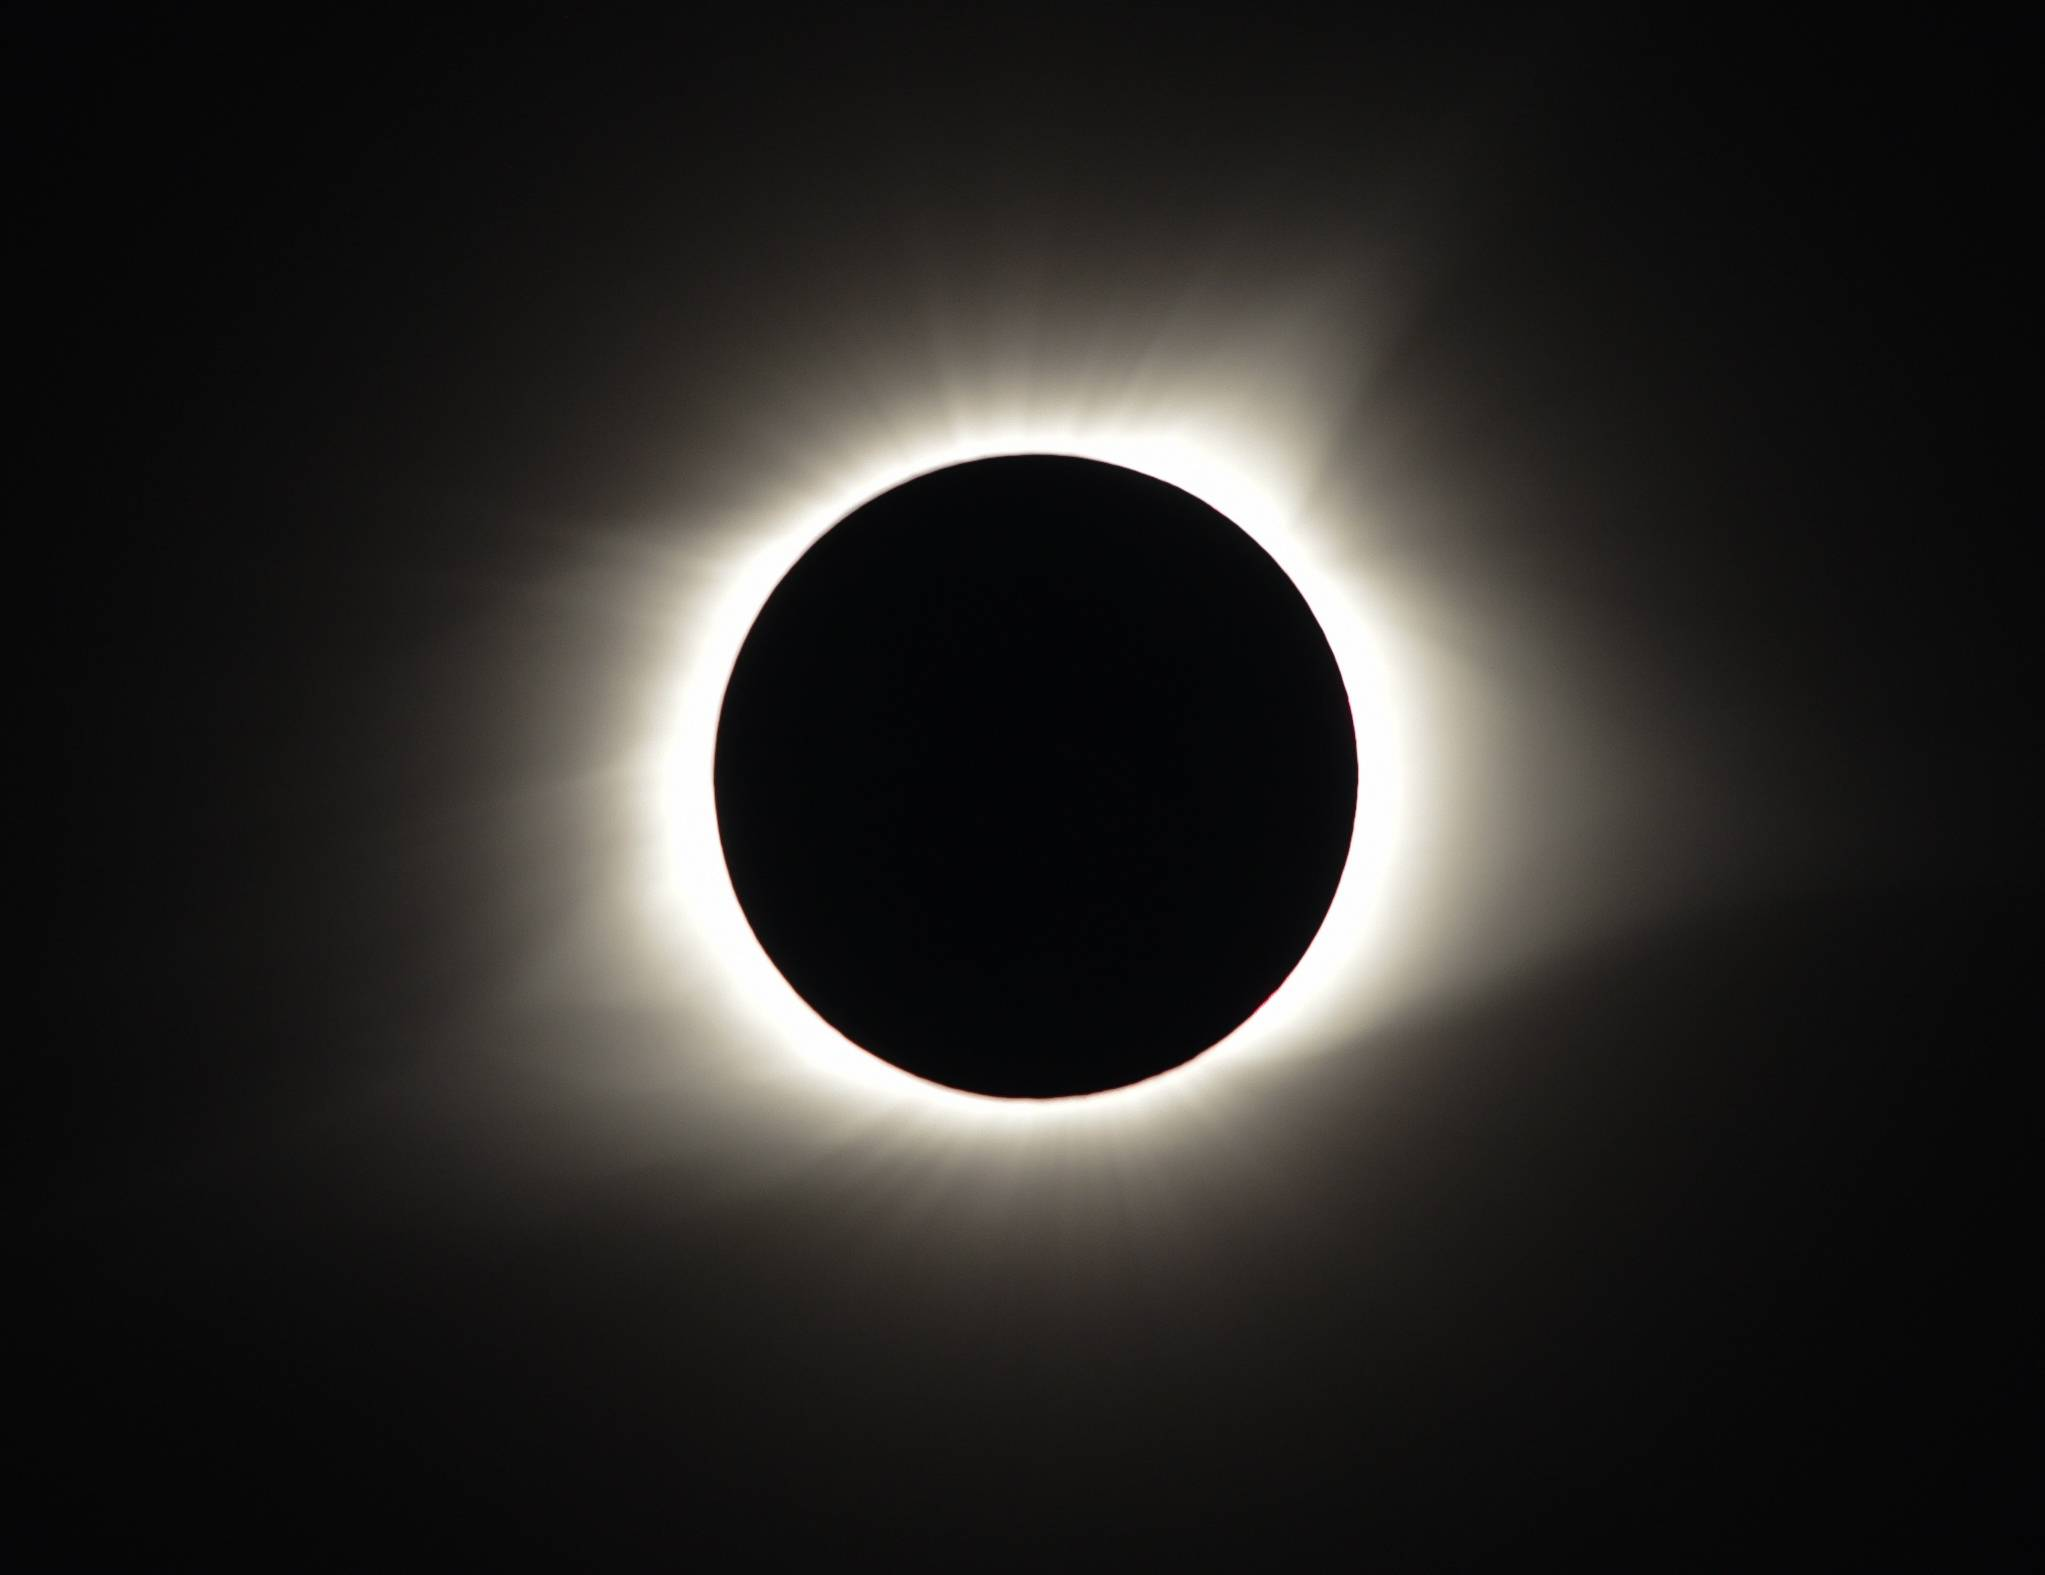 The total eclipse as seen in Chester, Illinois.